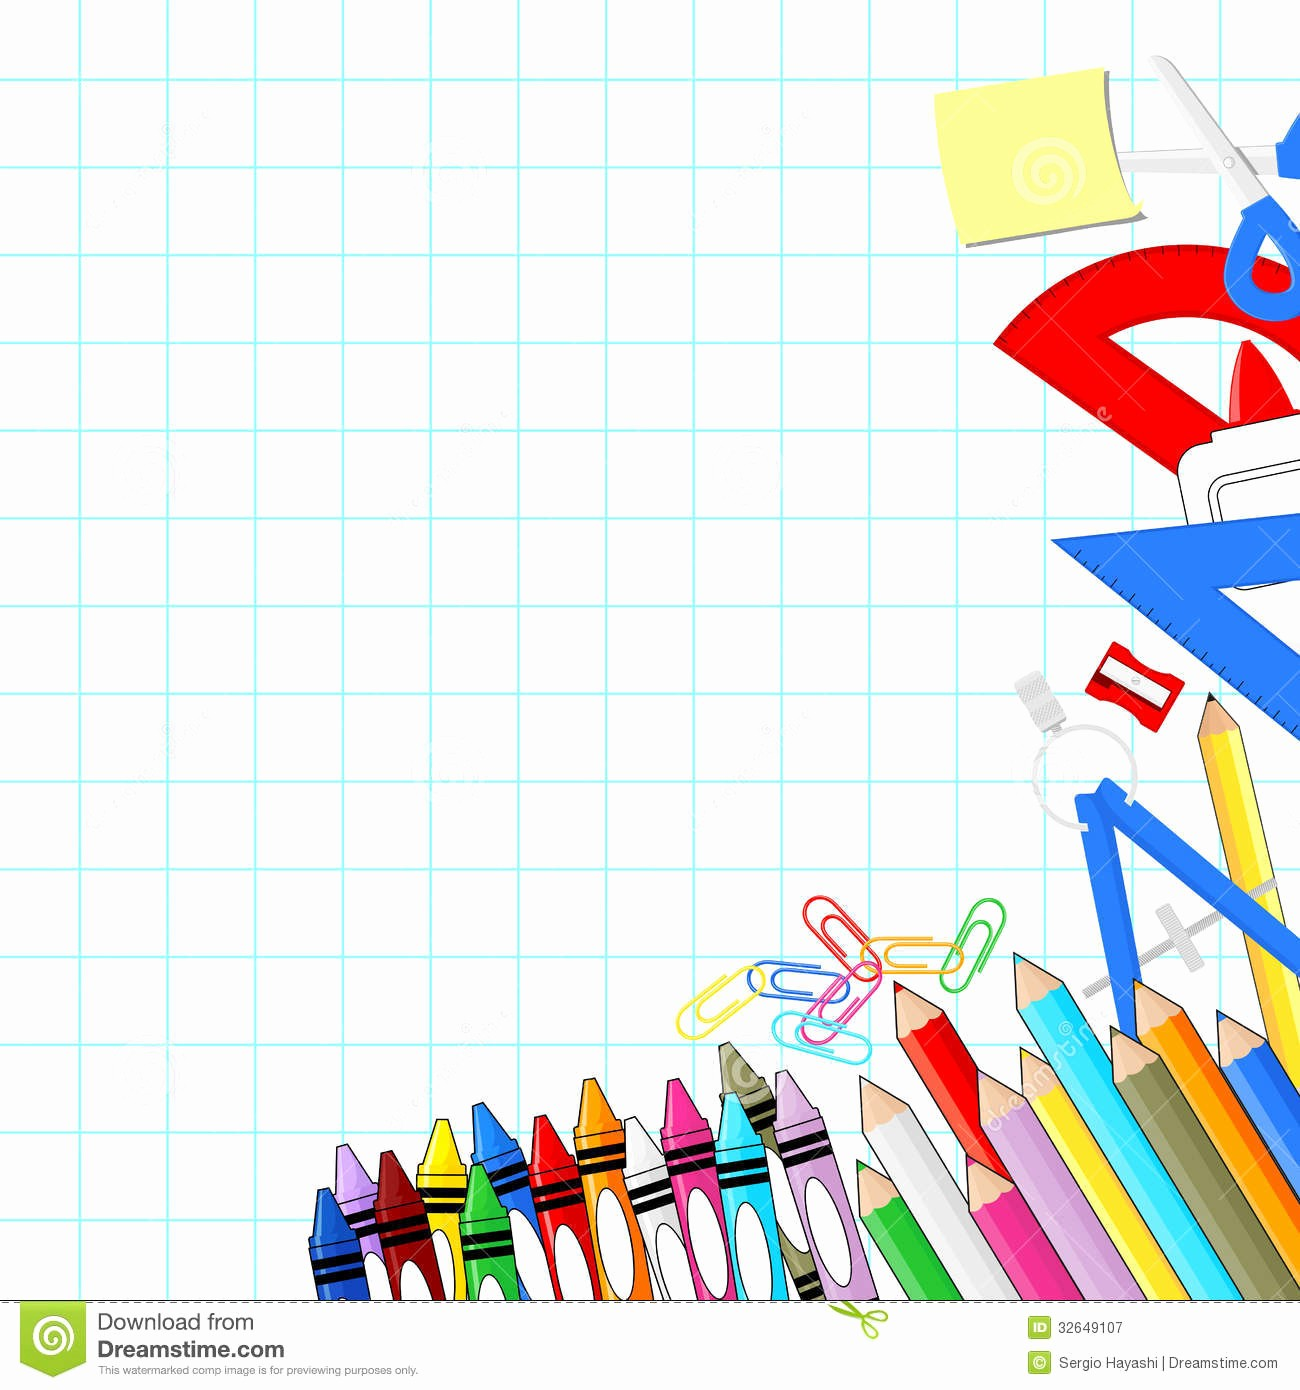 Cute School Backgrounds for Powerpoint Inspirational School Supplies Background Stock Vector Illustration Of